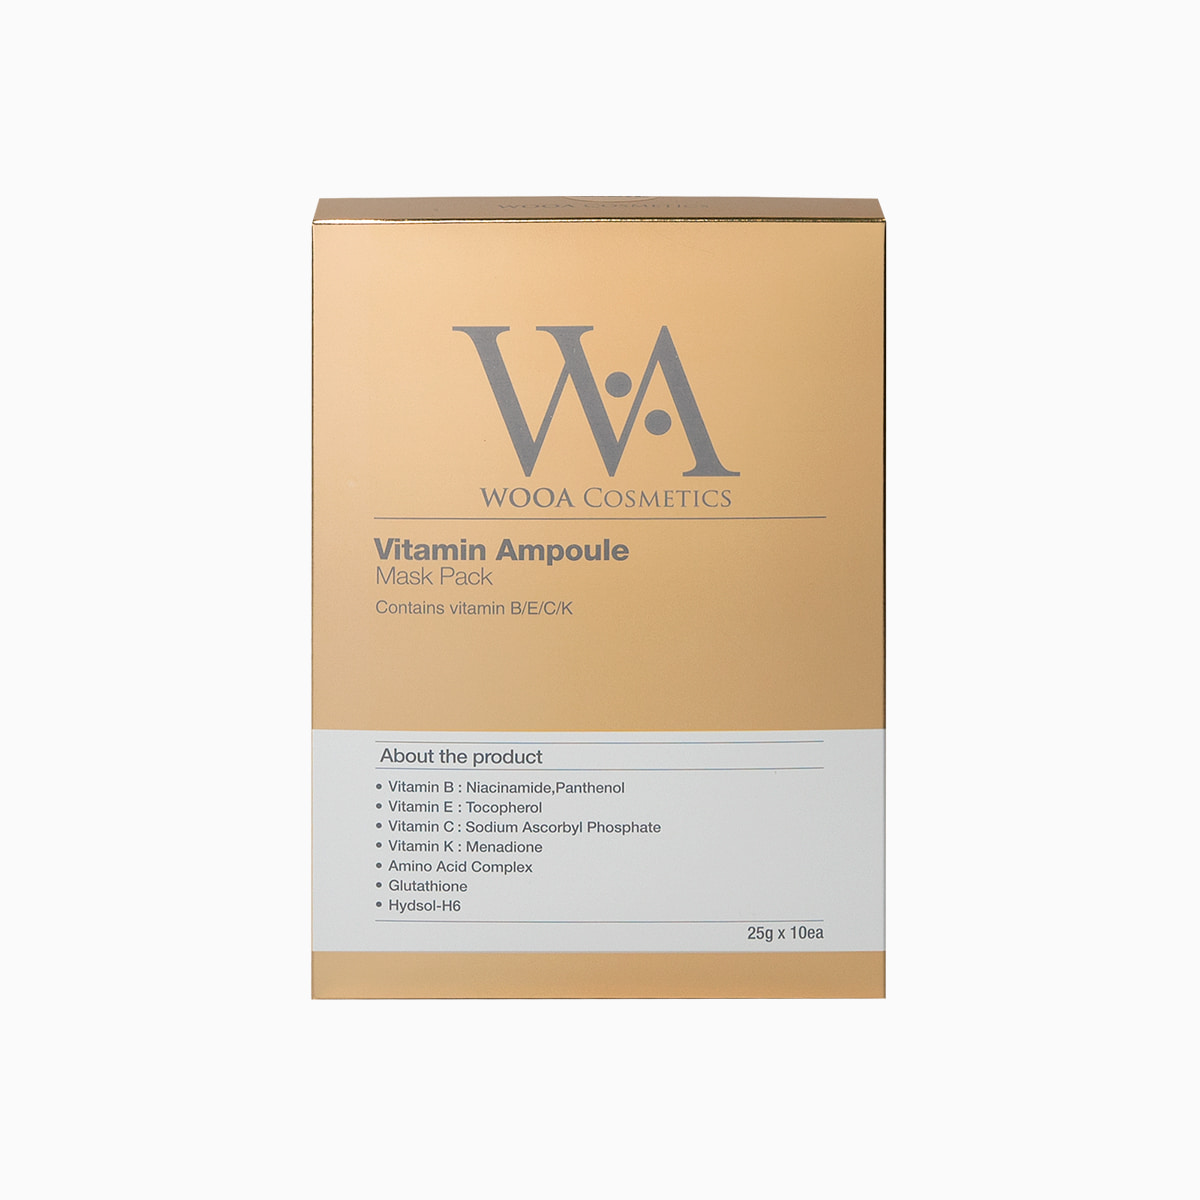 Vitamin Ampoule Mask Pack 25g x 10 1box